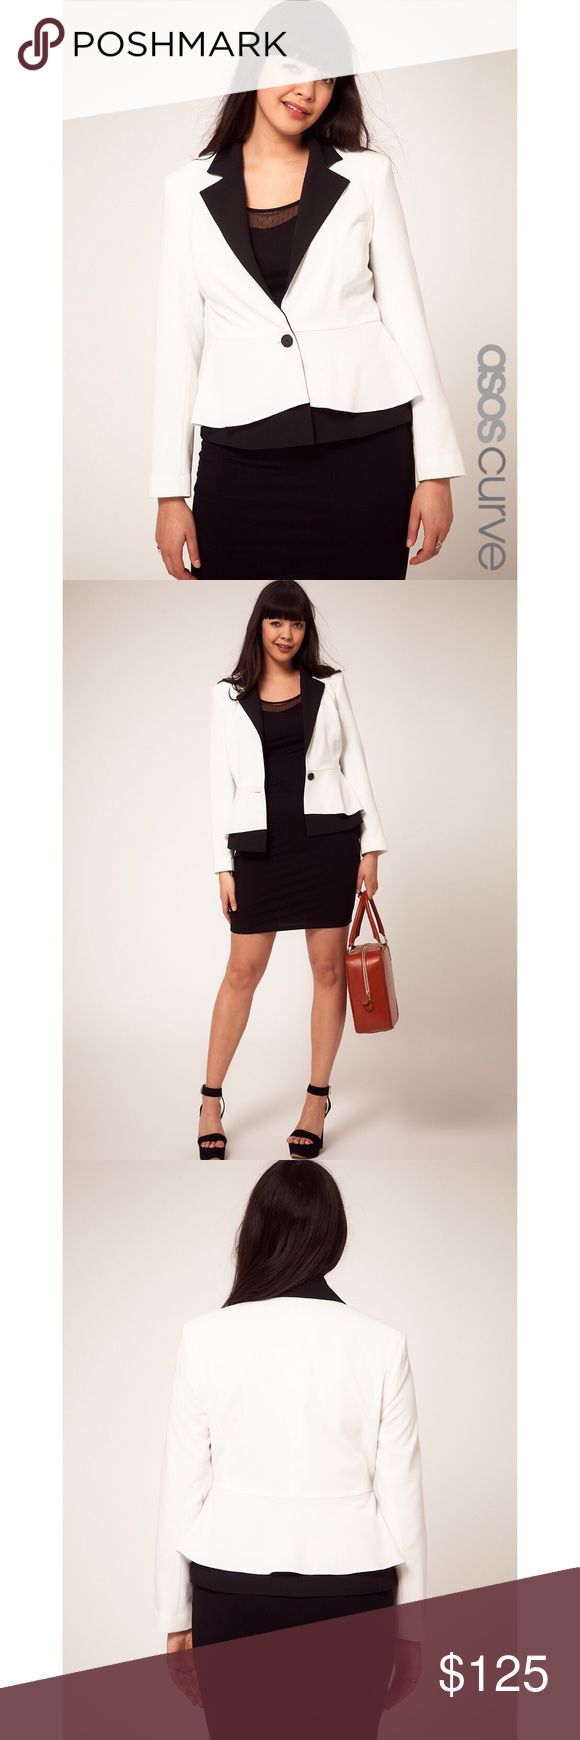 ASOS CURVE Peplum Jacket White Black Lapel Blazer ASOS CURVE Exclusive Peplum jacket stunning white Blazer with with black lapels in US size 20. NWOT New without tags. ASOS Curve Jackets & Coats Blazers